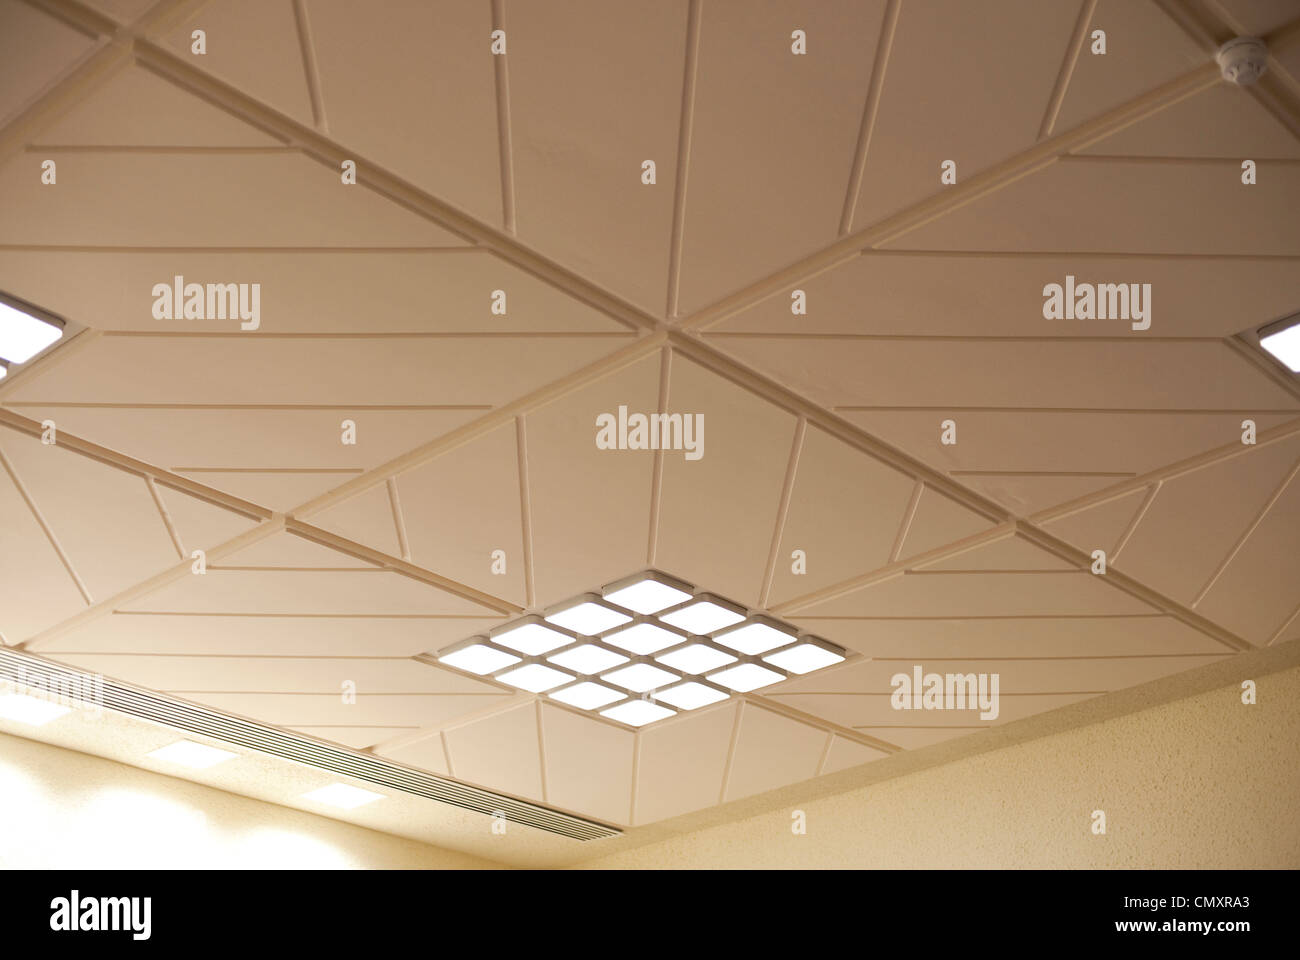 Strip lights ceiling stock photos strip lights ceiling stock beige and white ceiling tile patterns in an office stock image mozeypictures Gallery